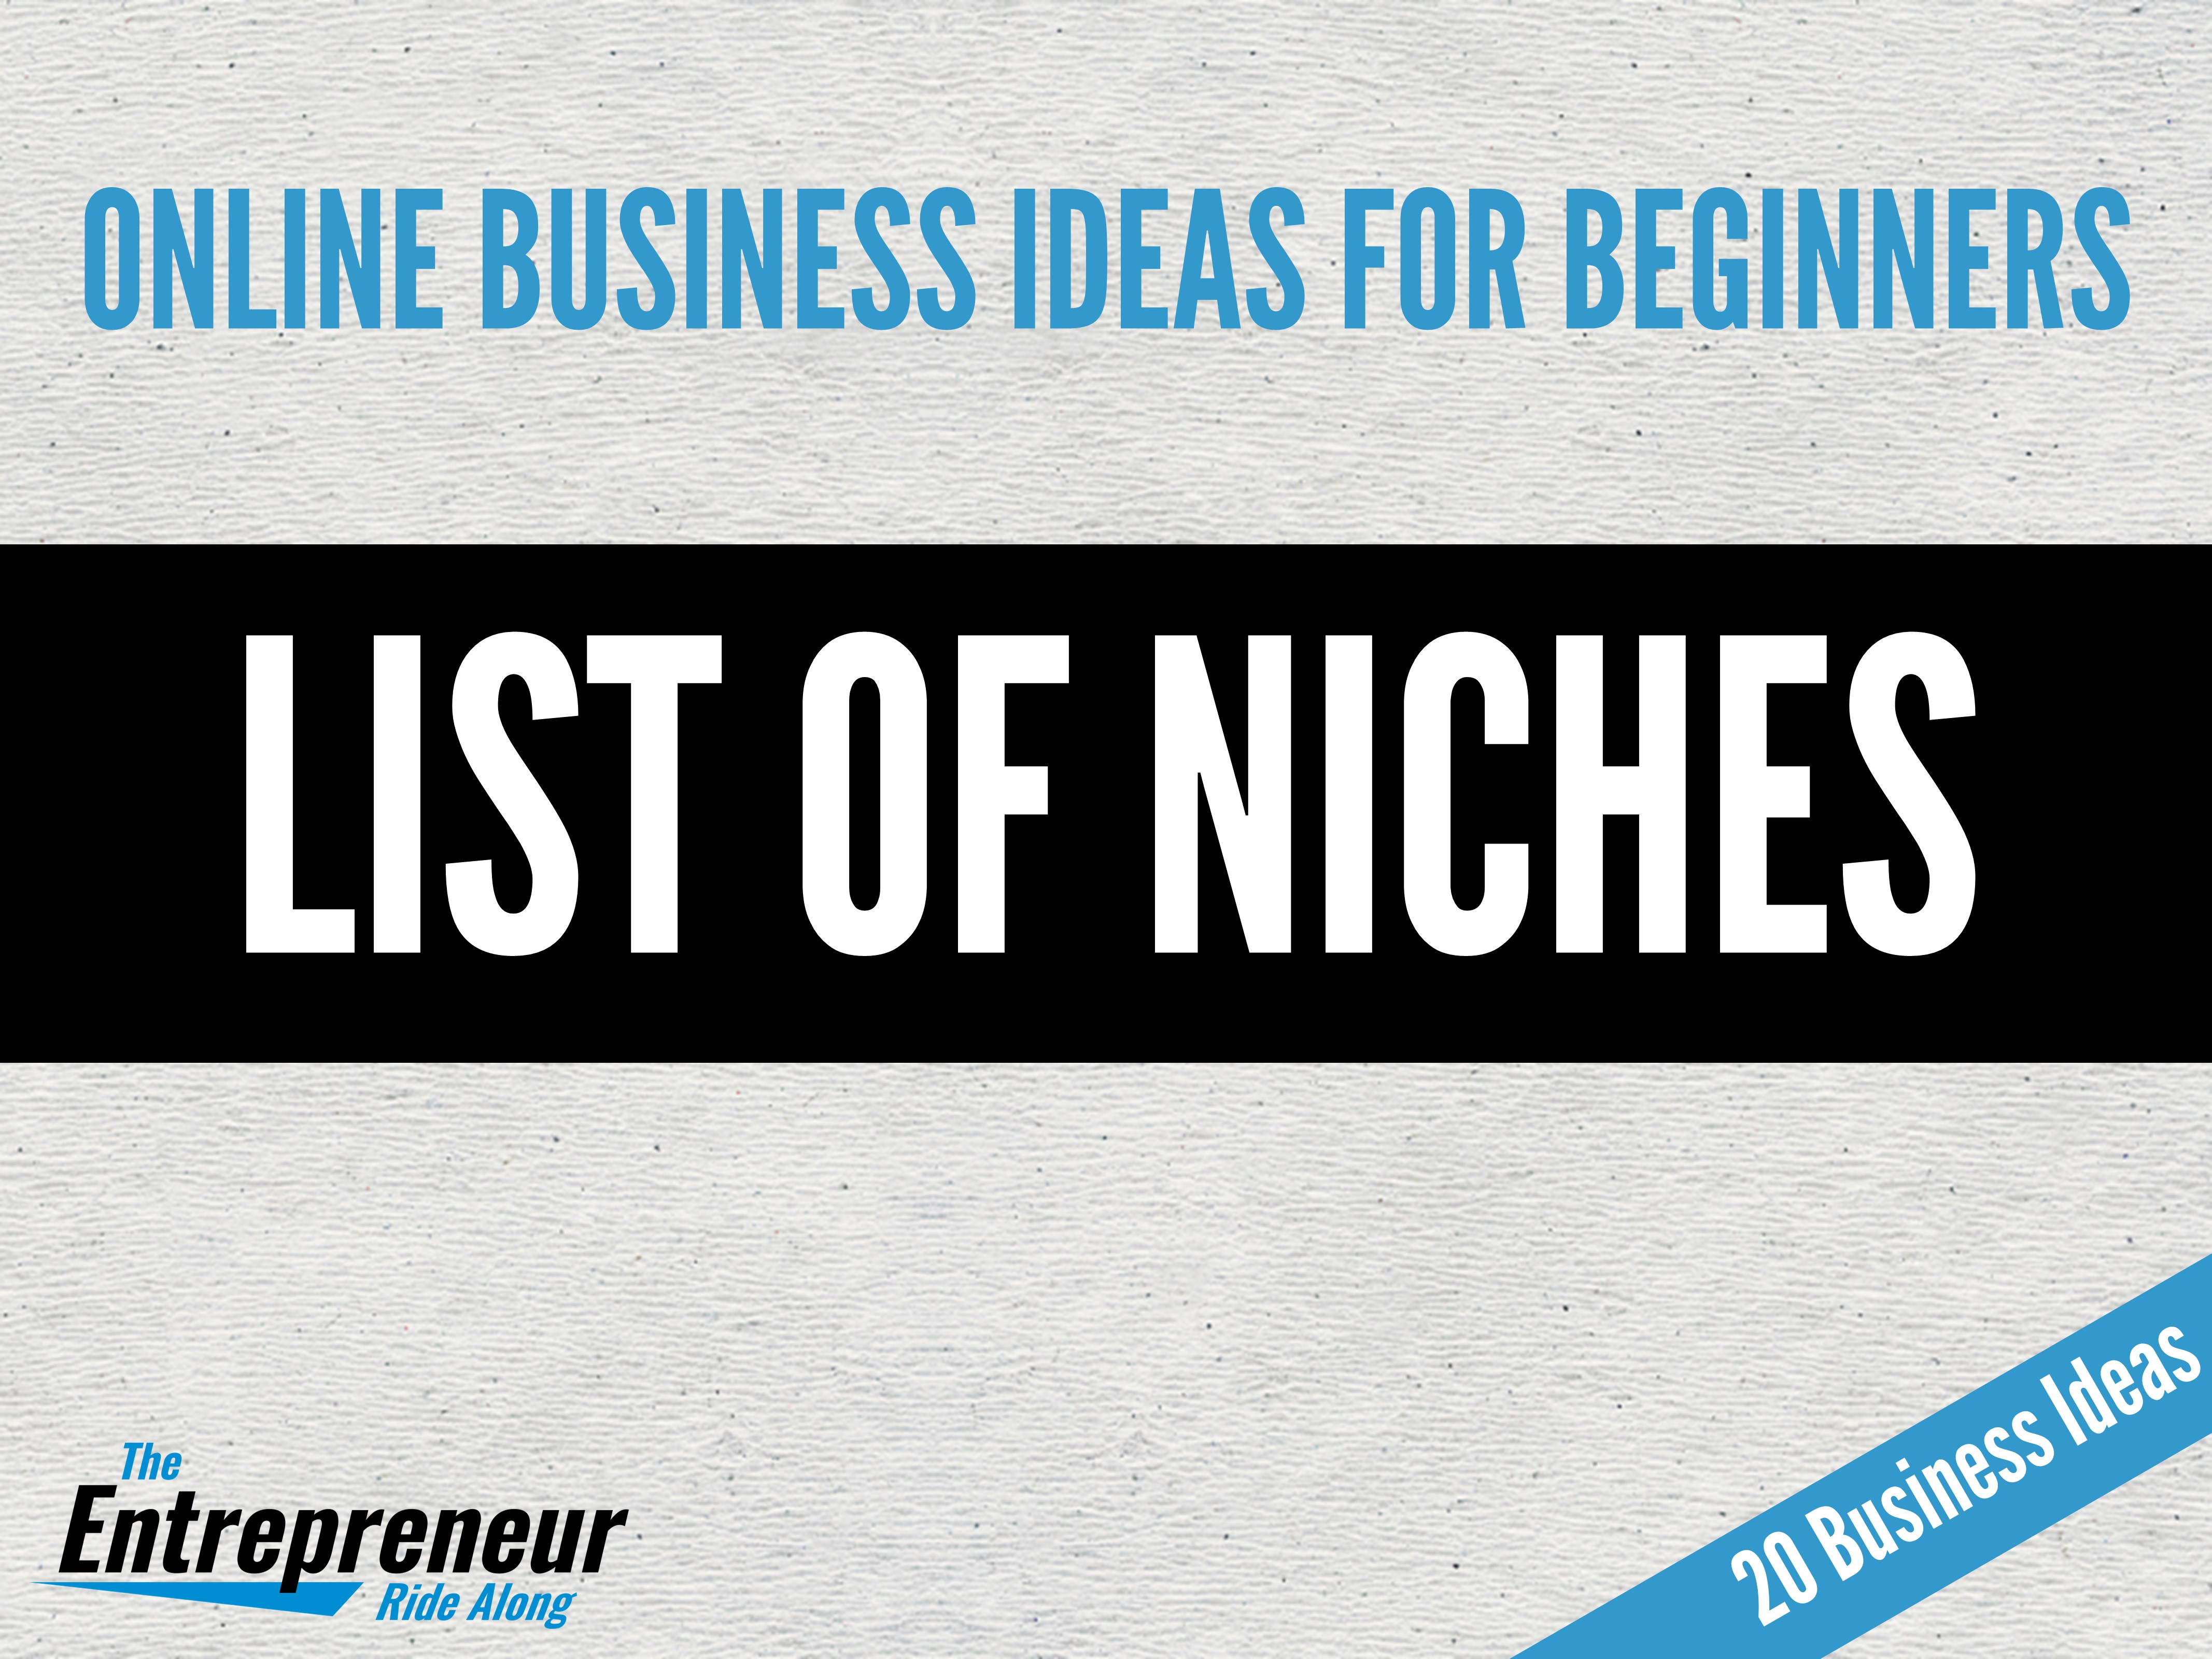 List of Niches - online business ideas for beginners